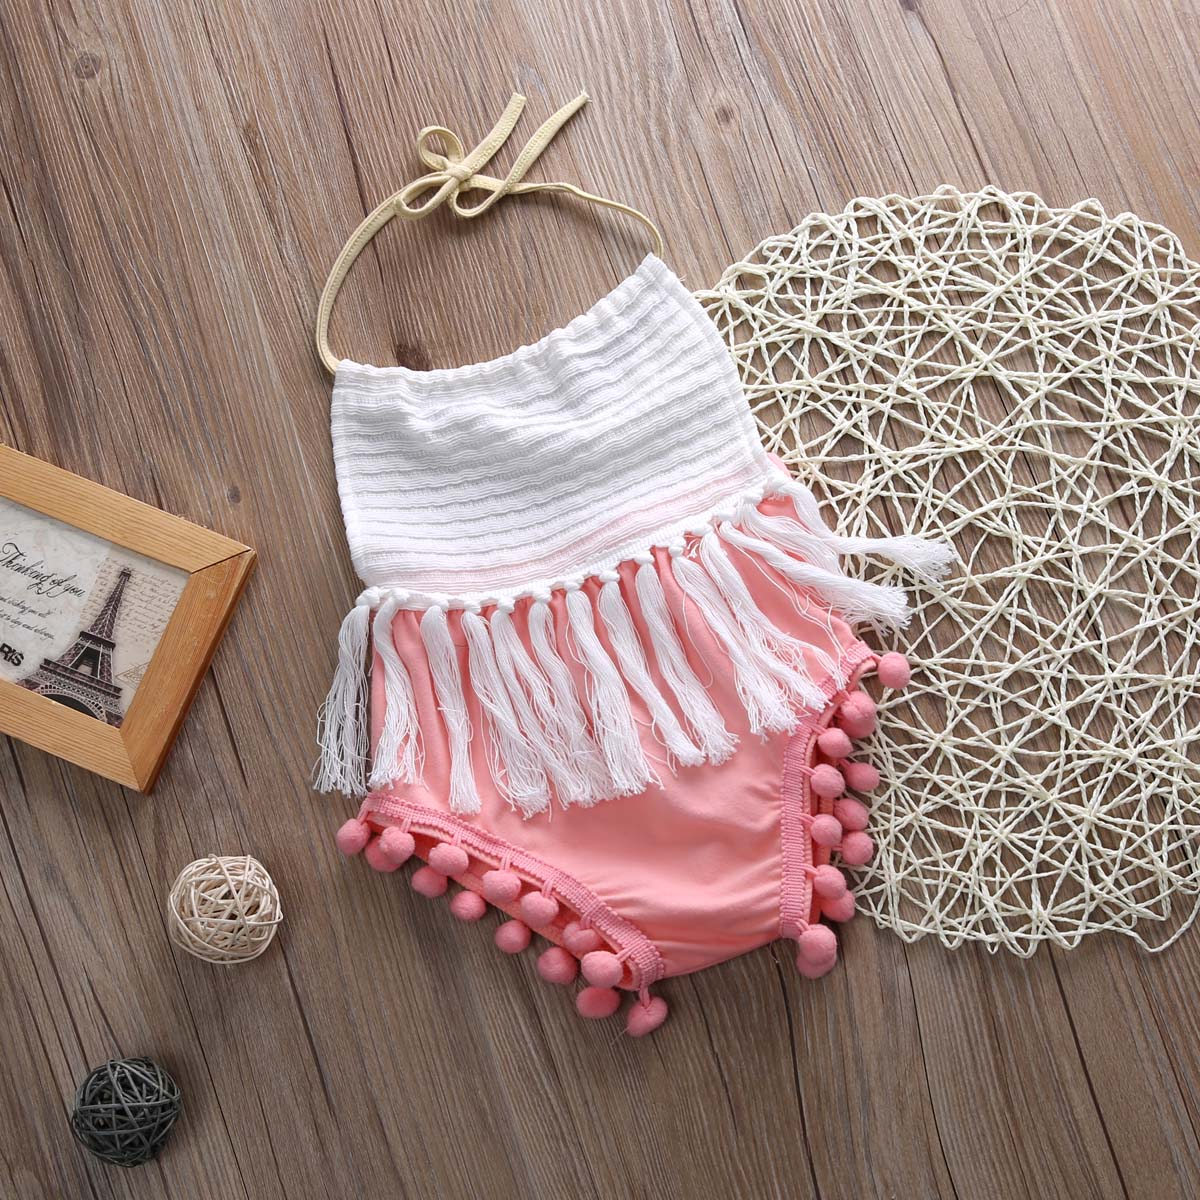 d02c6cdd966b Summer Newborn Infant Baby Girls Clothes Halter Sleeveless Tassel Patchwork Romper  Jumpsuit Outfits-in Bodysuits from Mother   Kids on Aliexpress.com ...